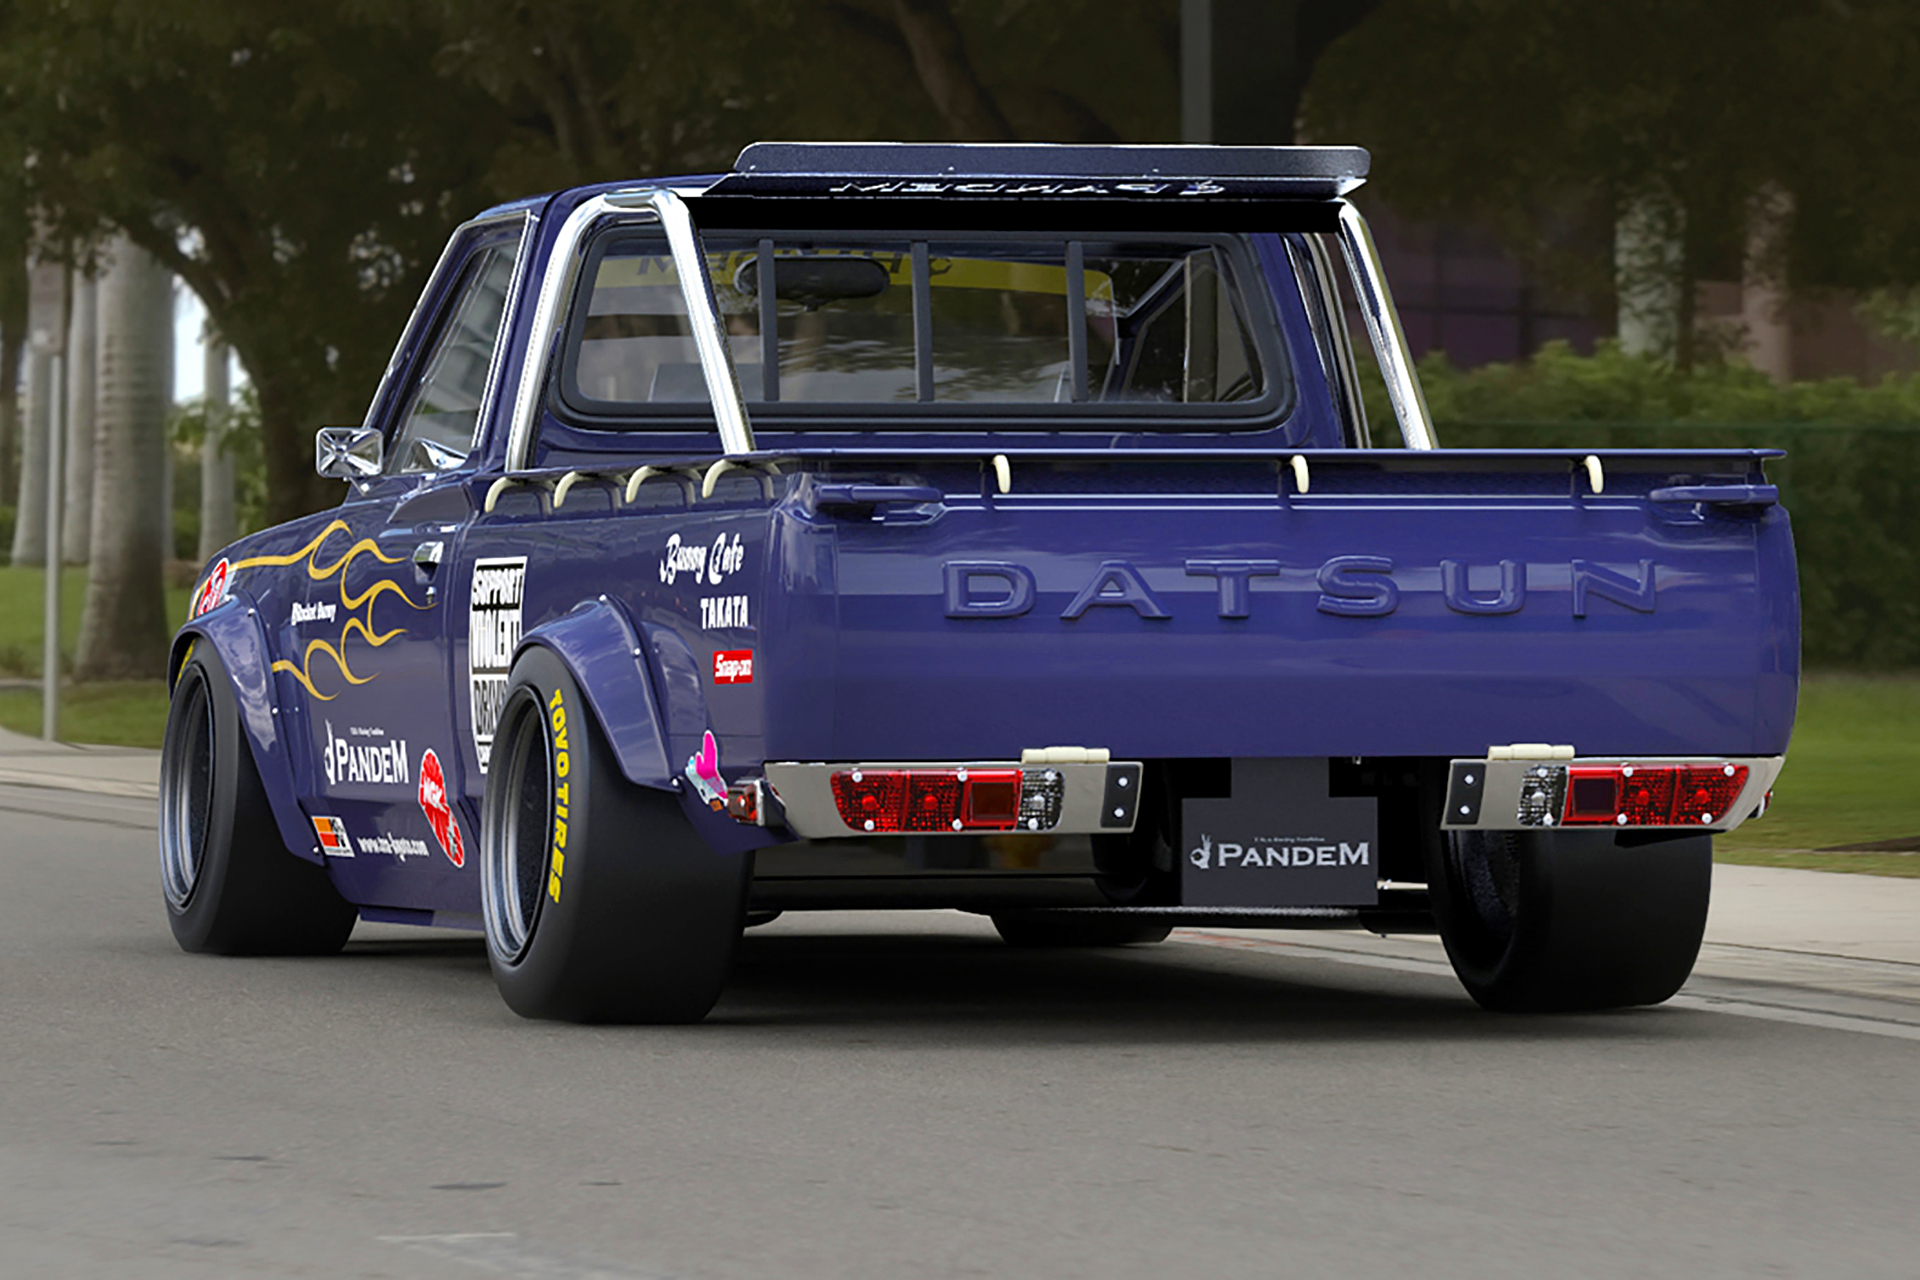 Kei Miura's Pandem Touch For The Datsun 620 - Speedhunters